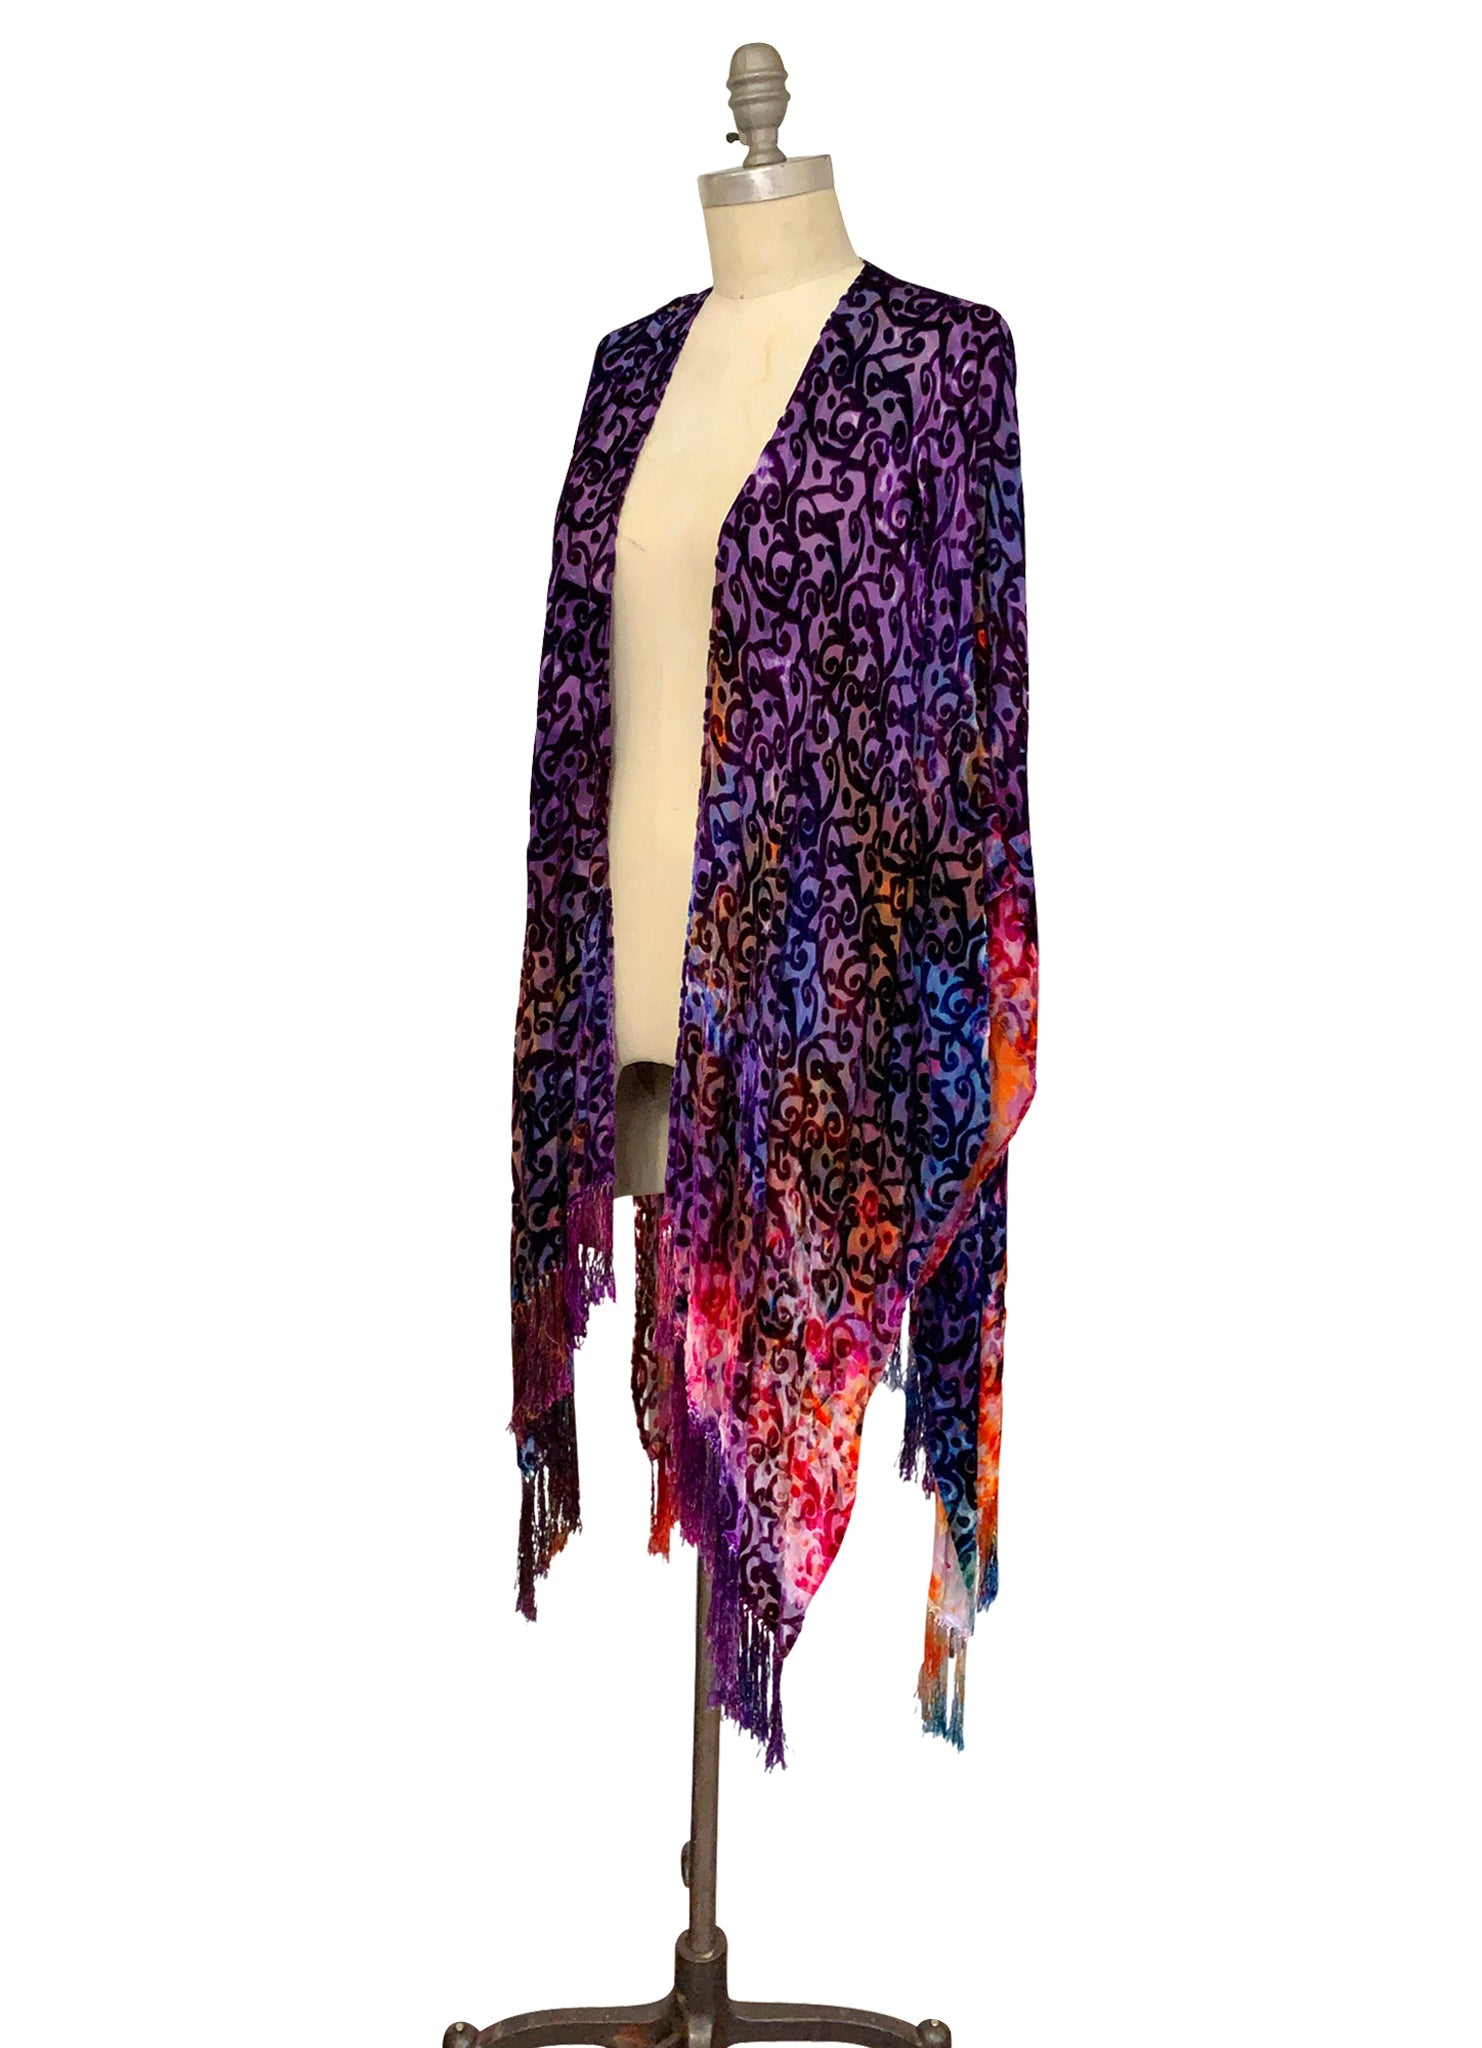 Velvet Burn-Out Fringe Shawl in Wonder - Velvet Burnout Fringe Shawls - Dyetology